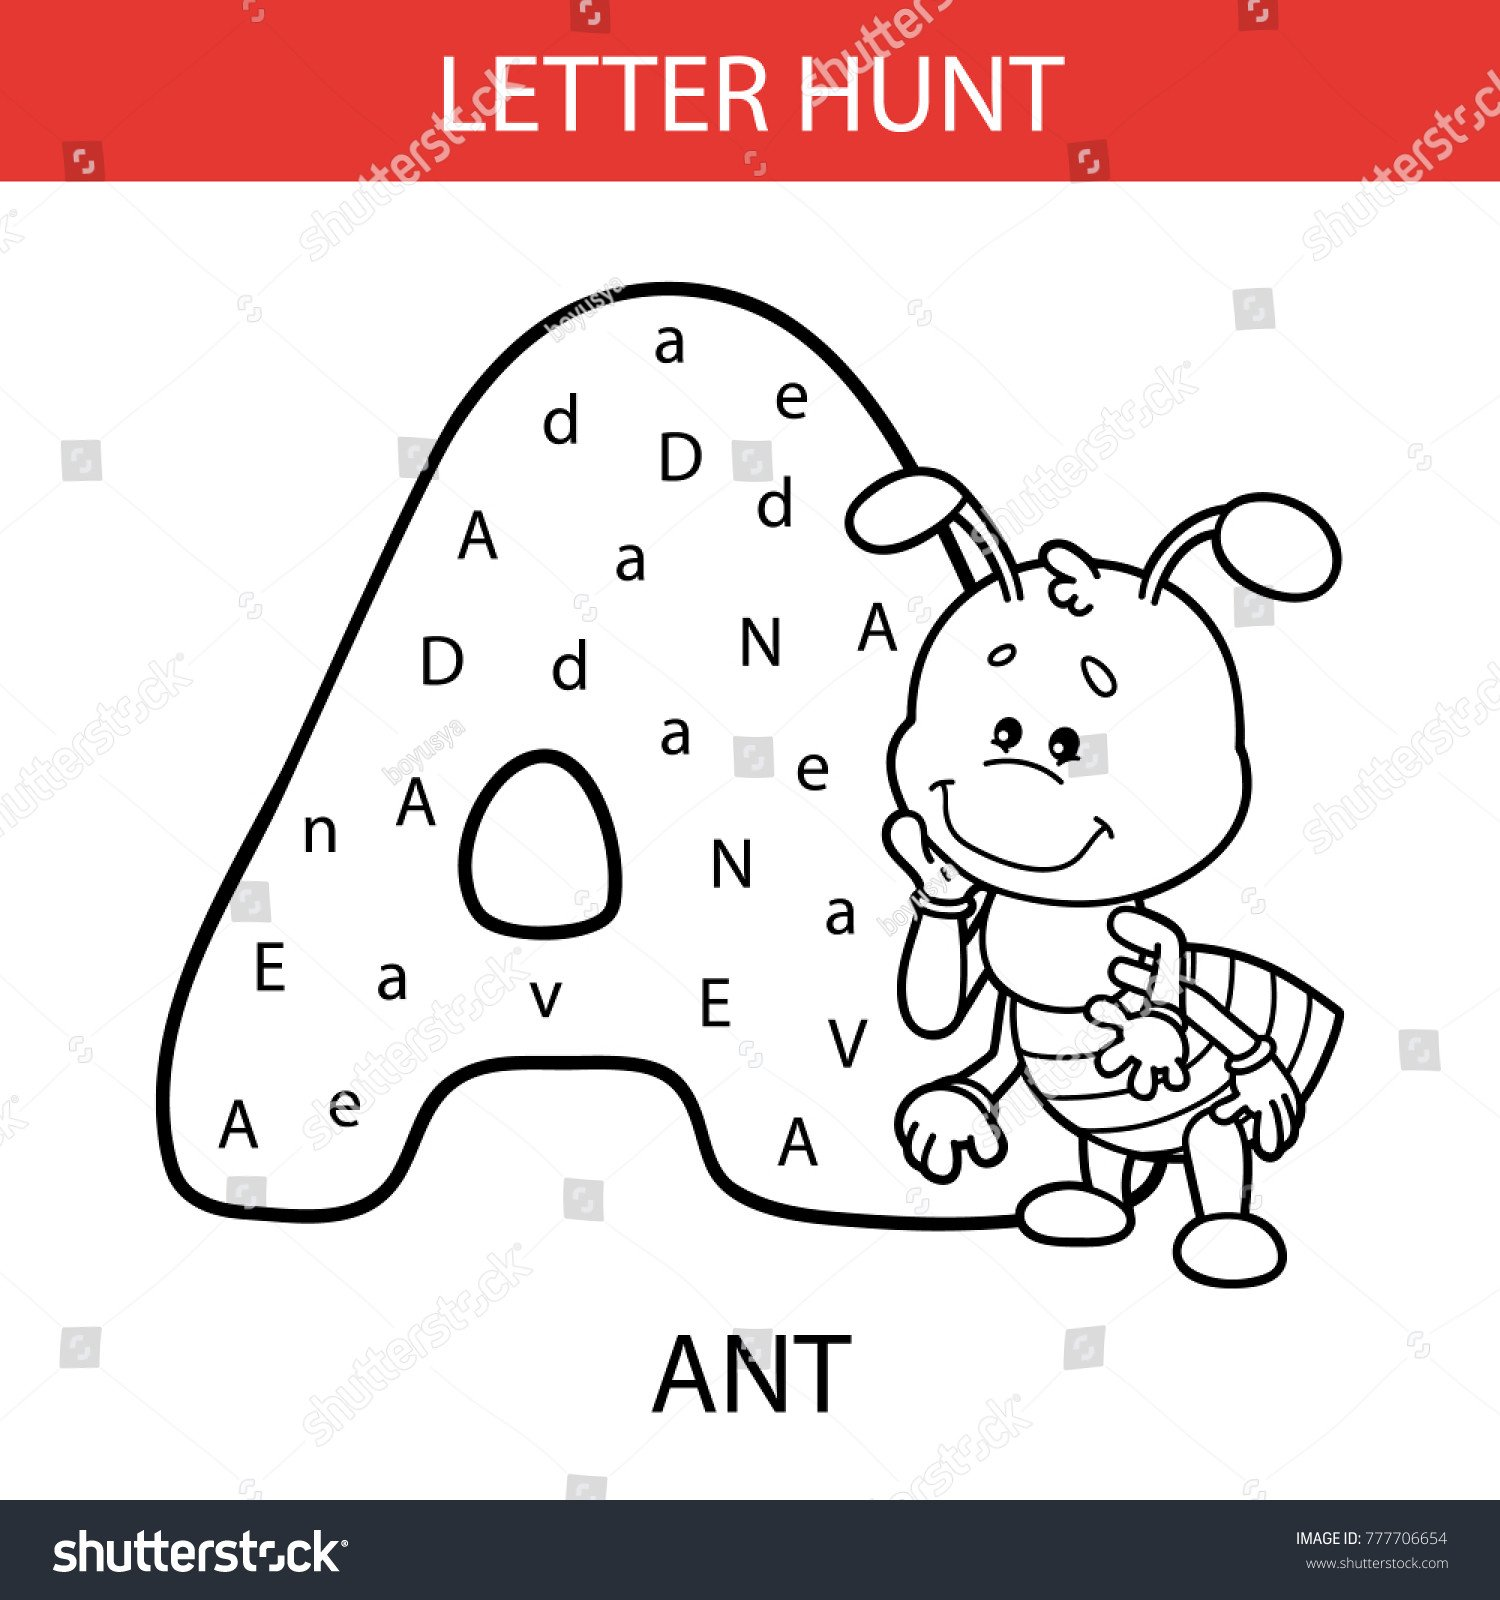 Letter Hunt Worksheet Vector Illustration Printable Kids Alphabet Worksheets Stock